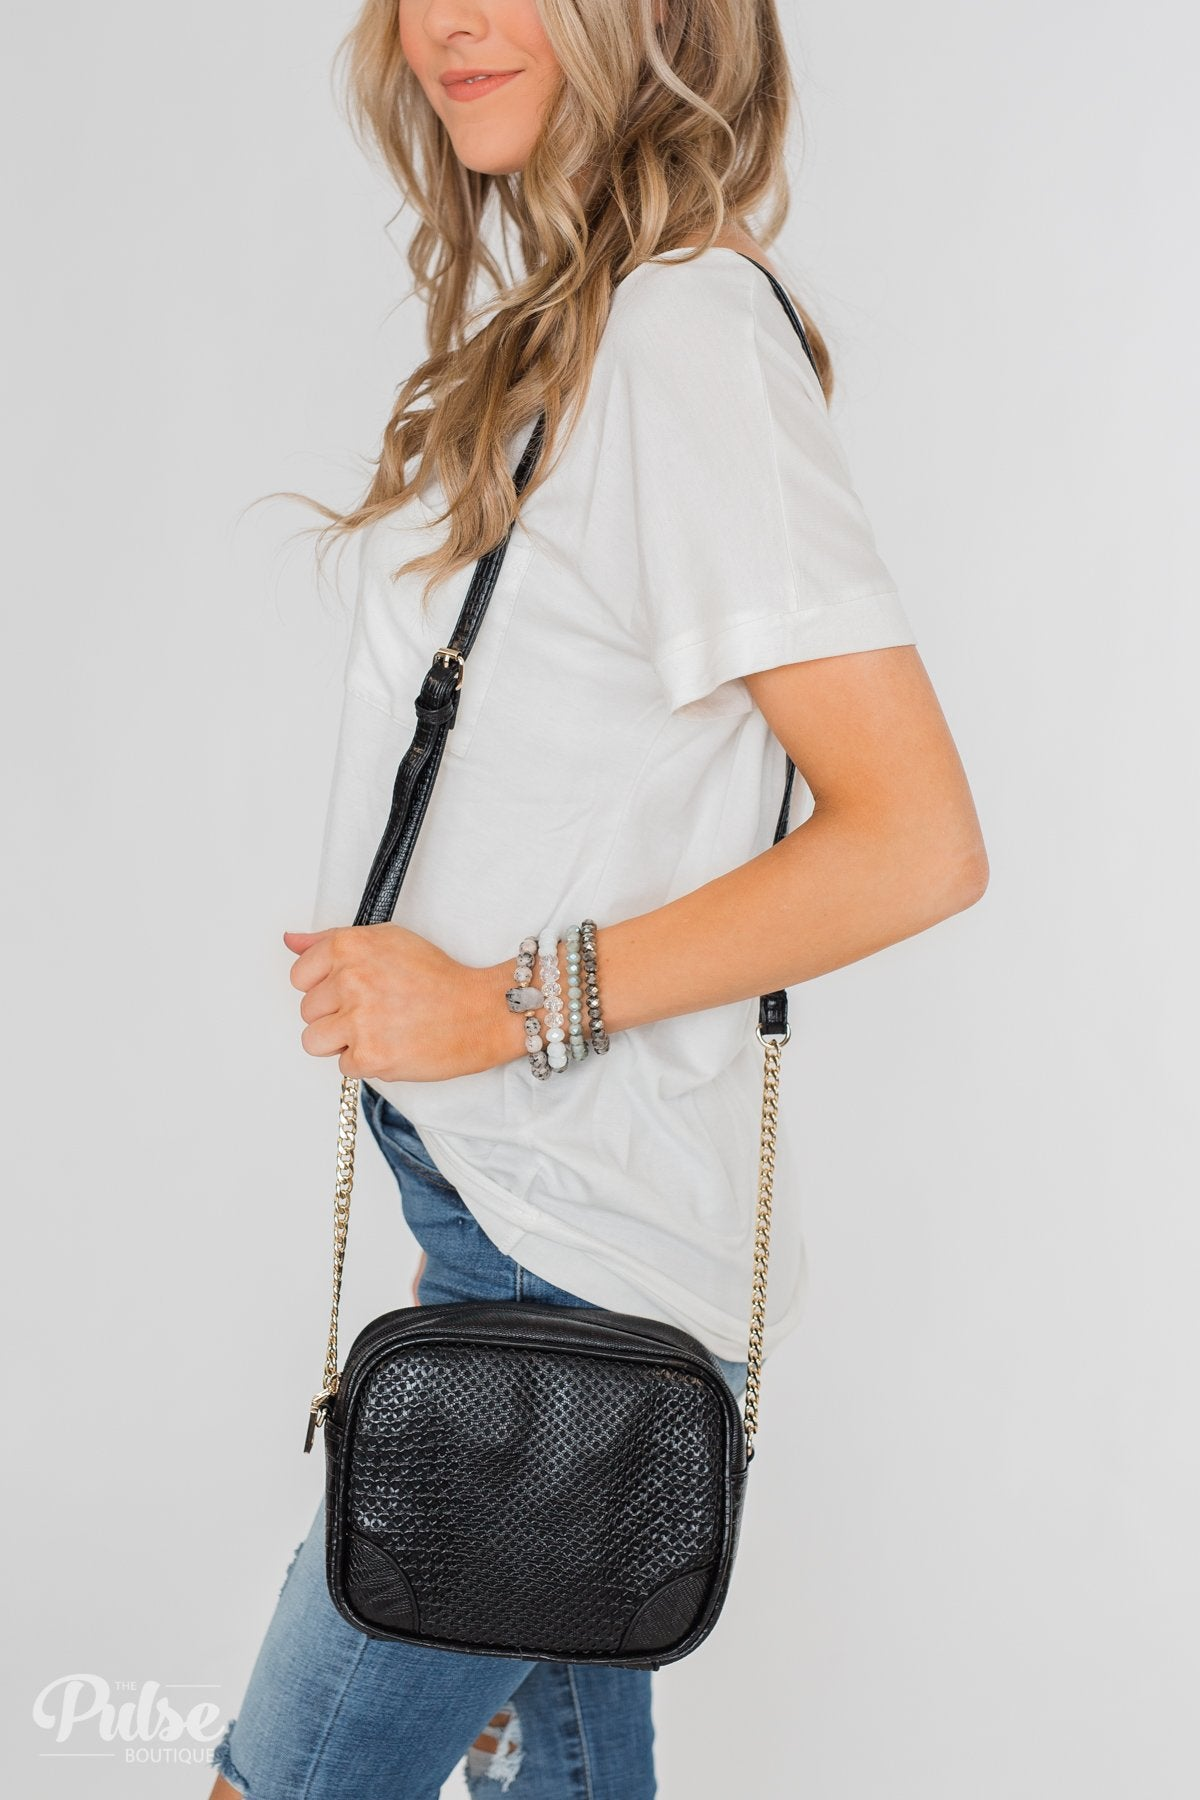 Essential Crossbody Purse- Black